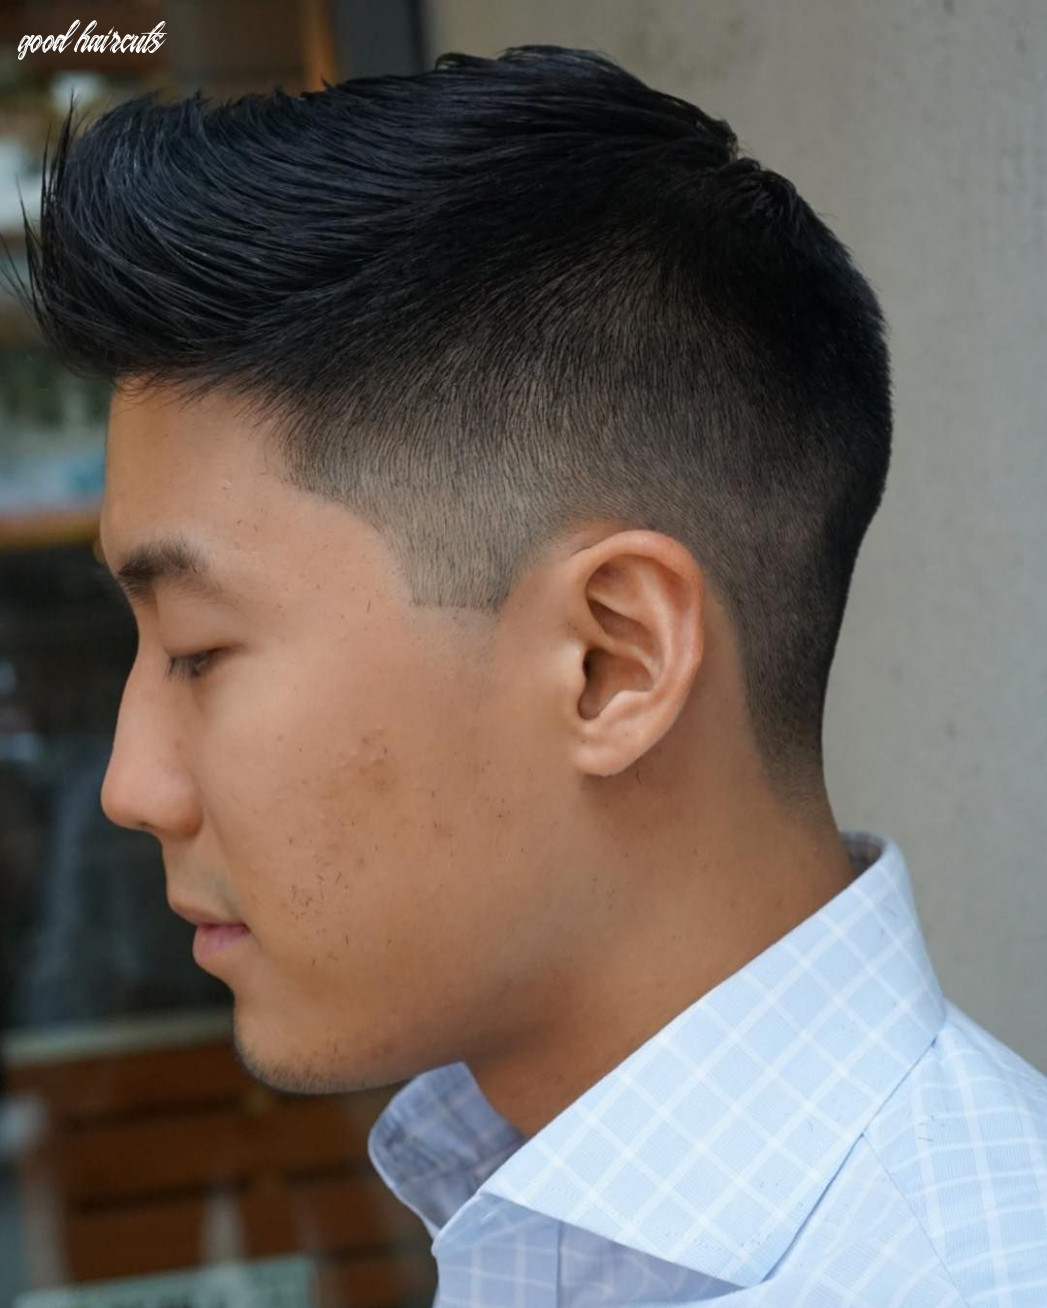 12 good haircuts for men (12 styles)   asian men hairstyle